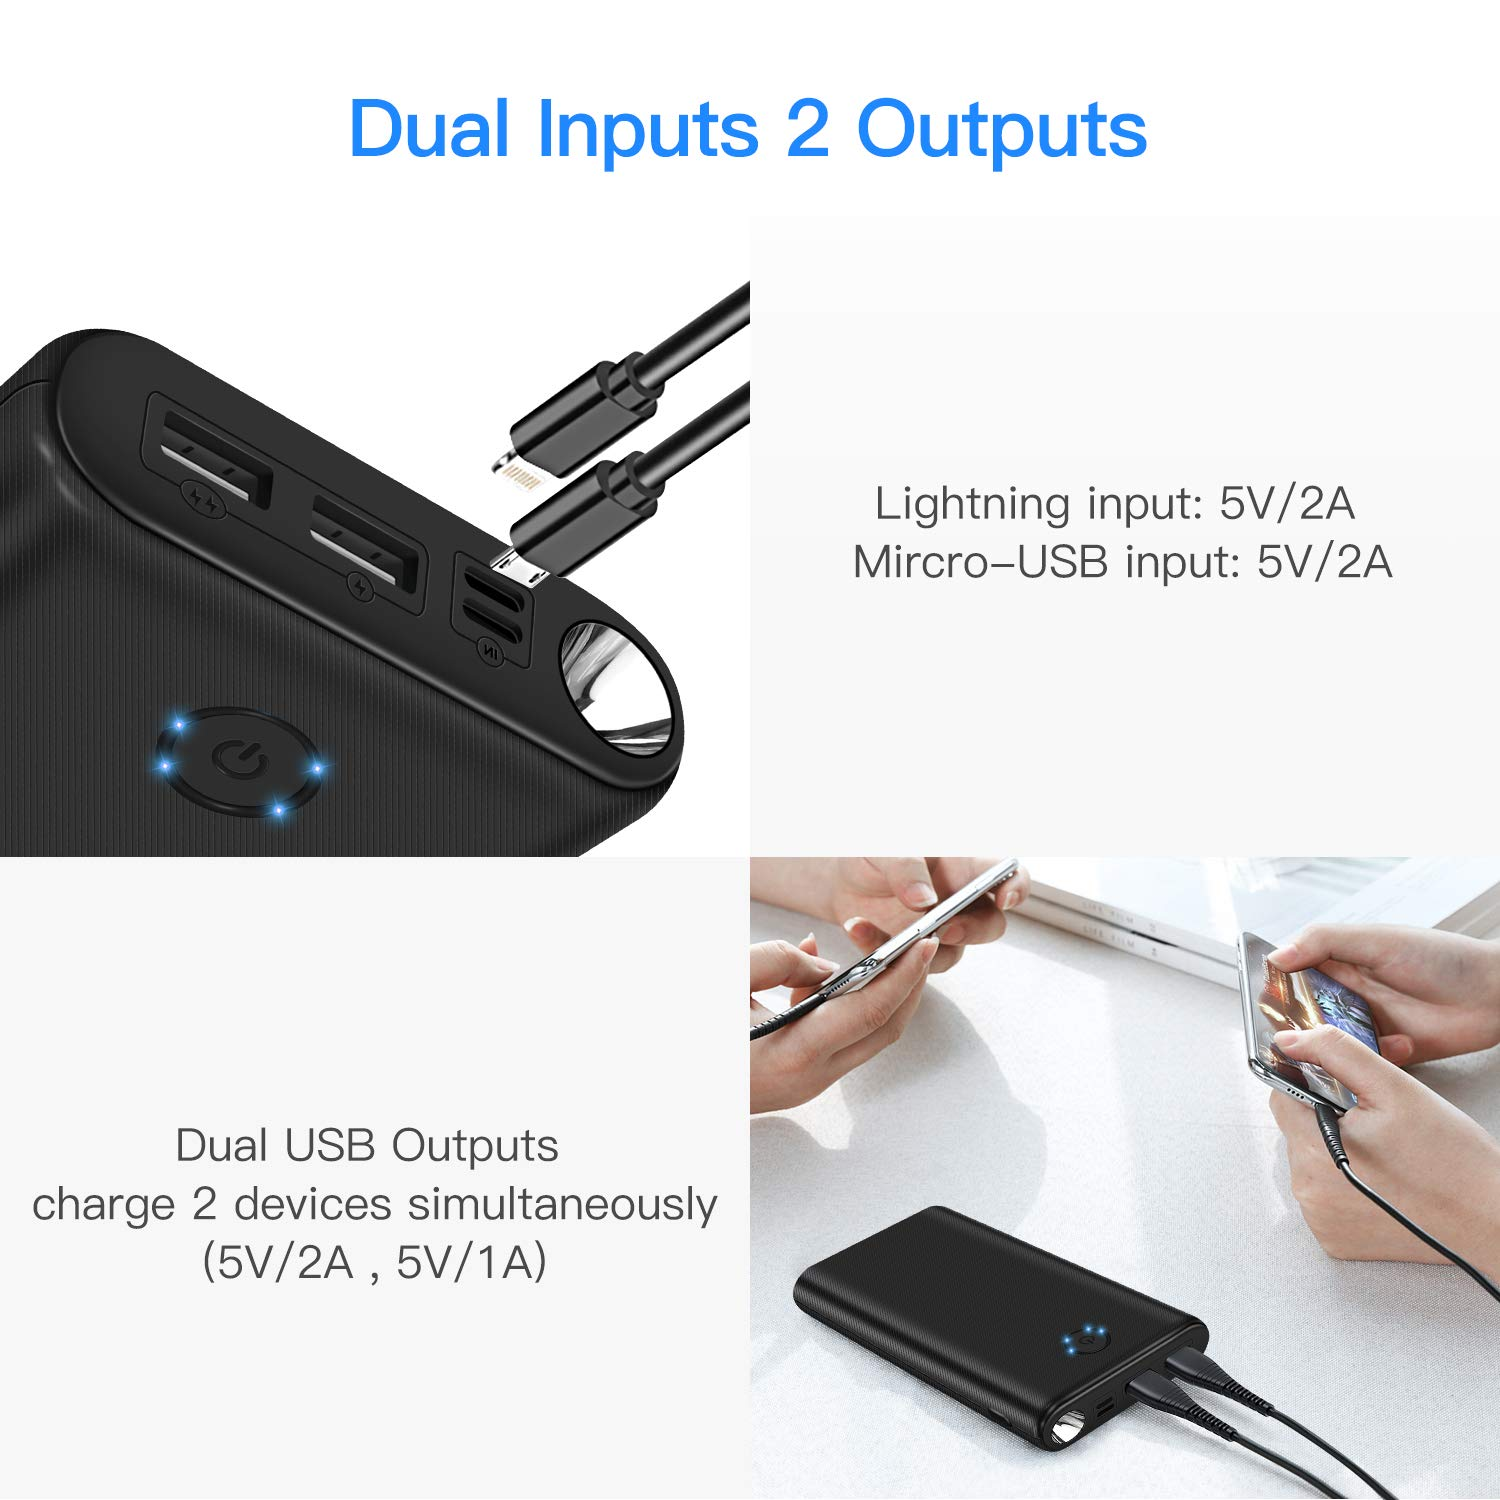 Power Bank Portable Charger 26800mAh Battery Pack Cell Charger with Dual Inputs and Dual Outputs Backup Battery,Power Indicator Flashlight Design Compatible with Tablets Smart Phones and other Devices